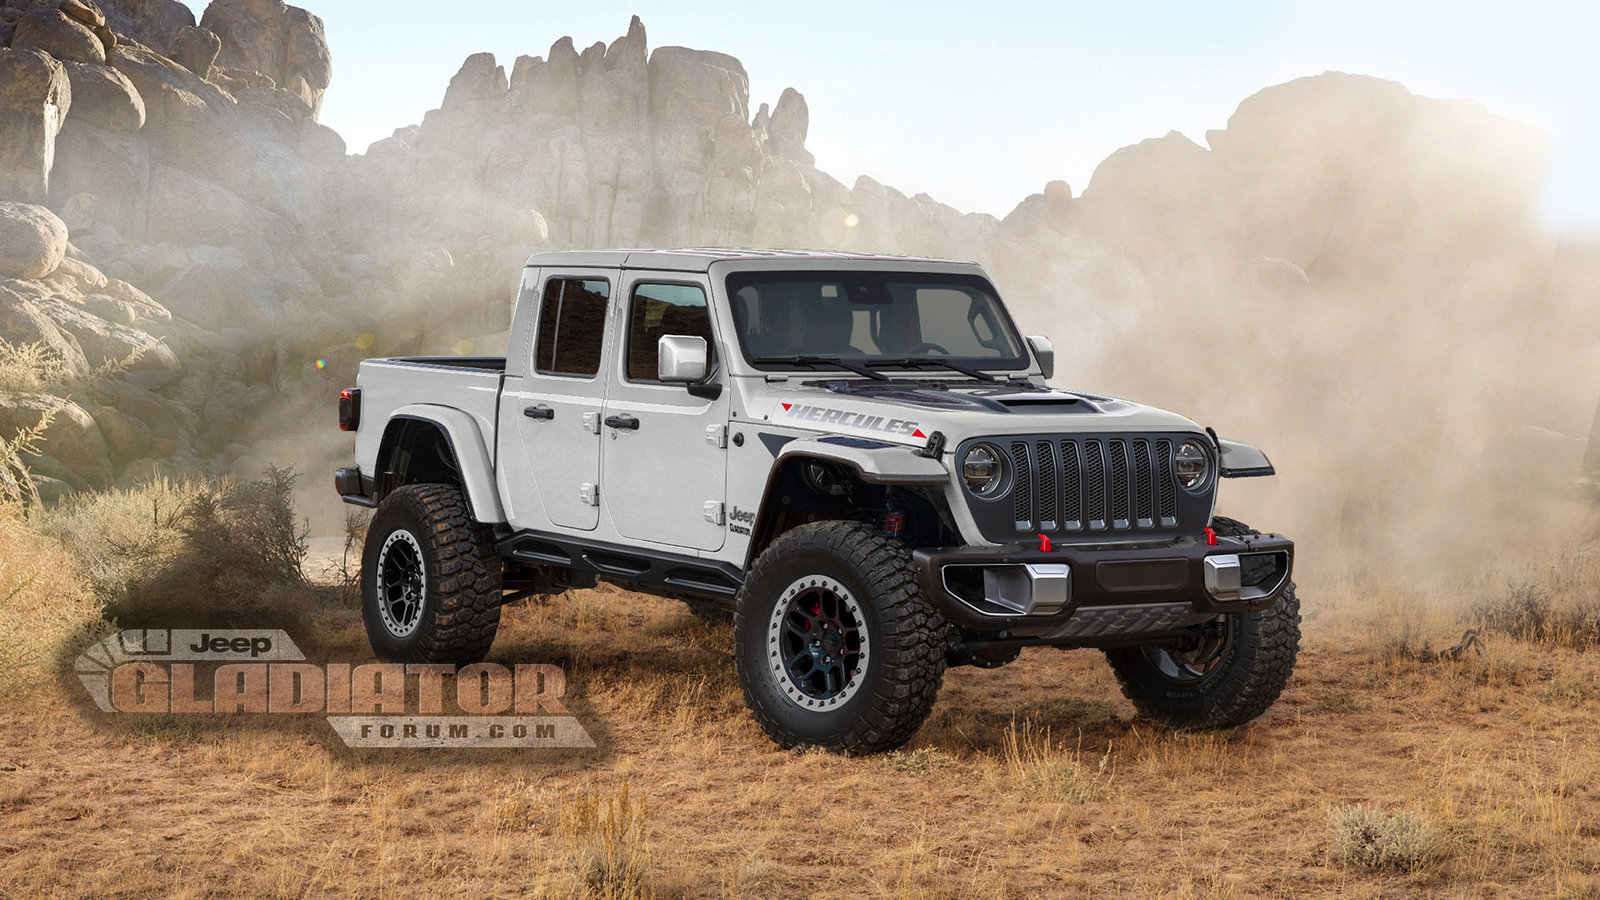 Jeep Gladiator Hercules renderings (1)